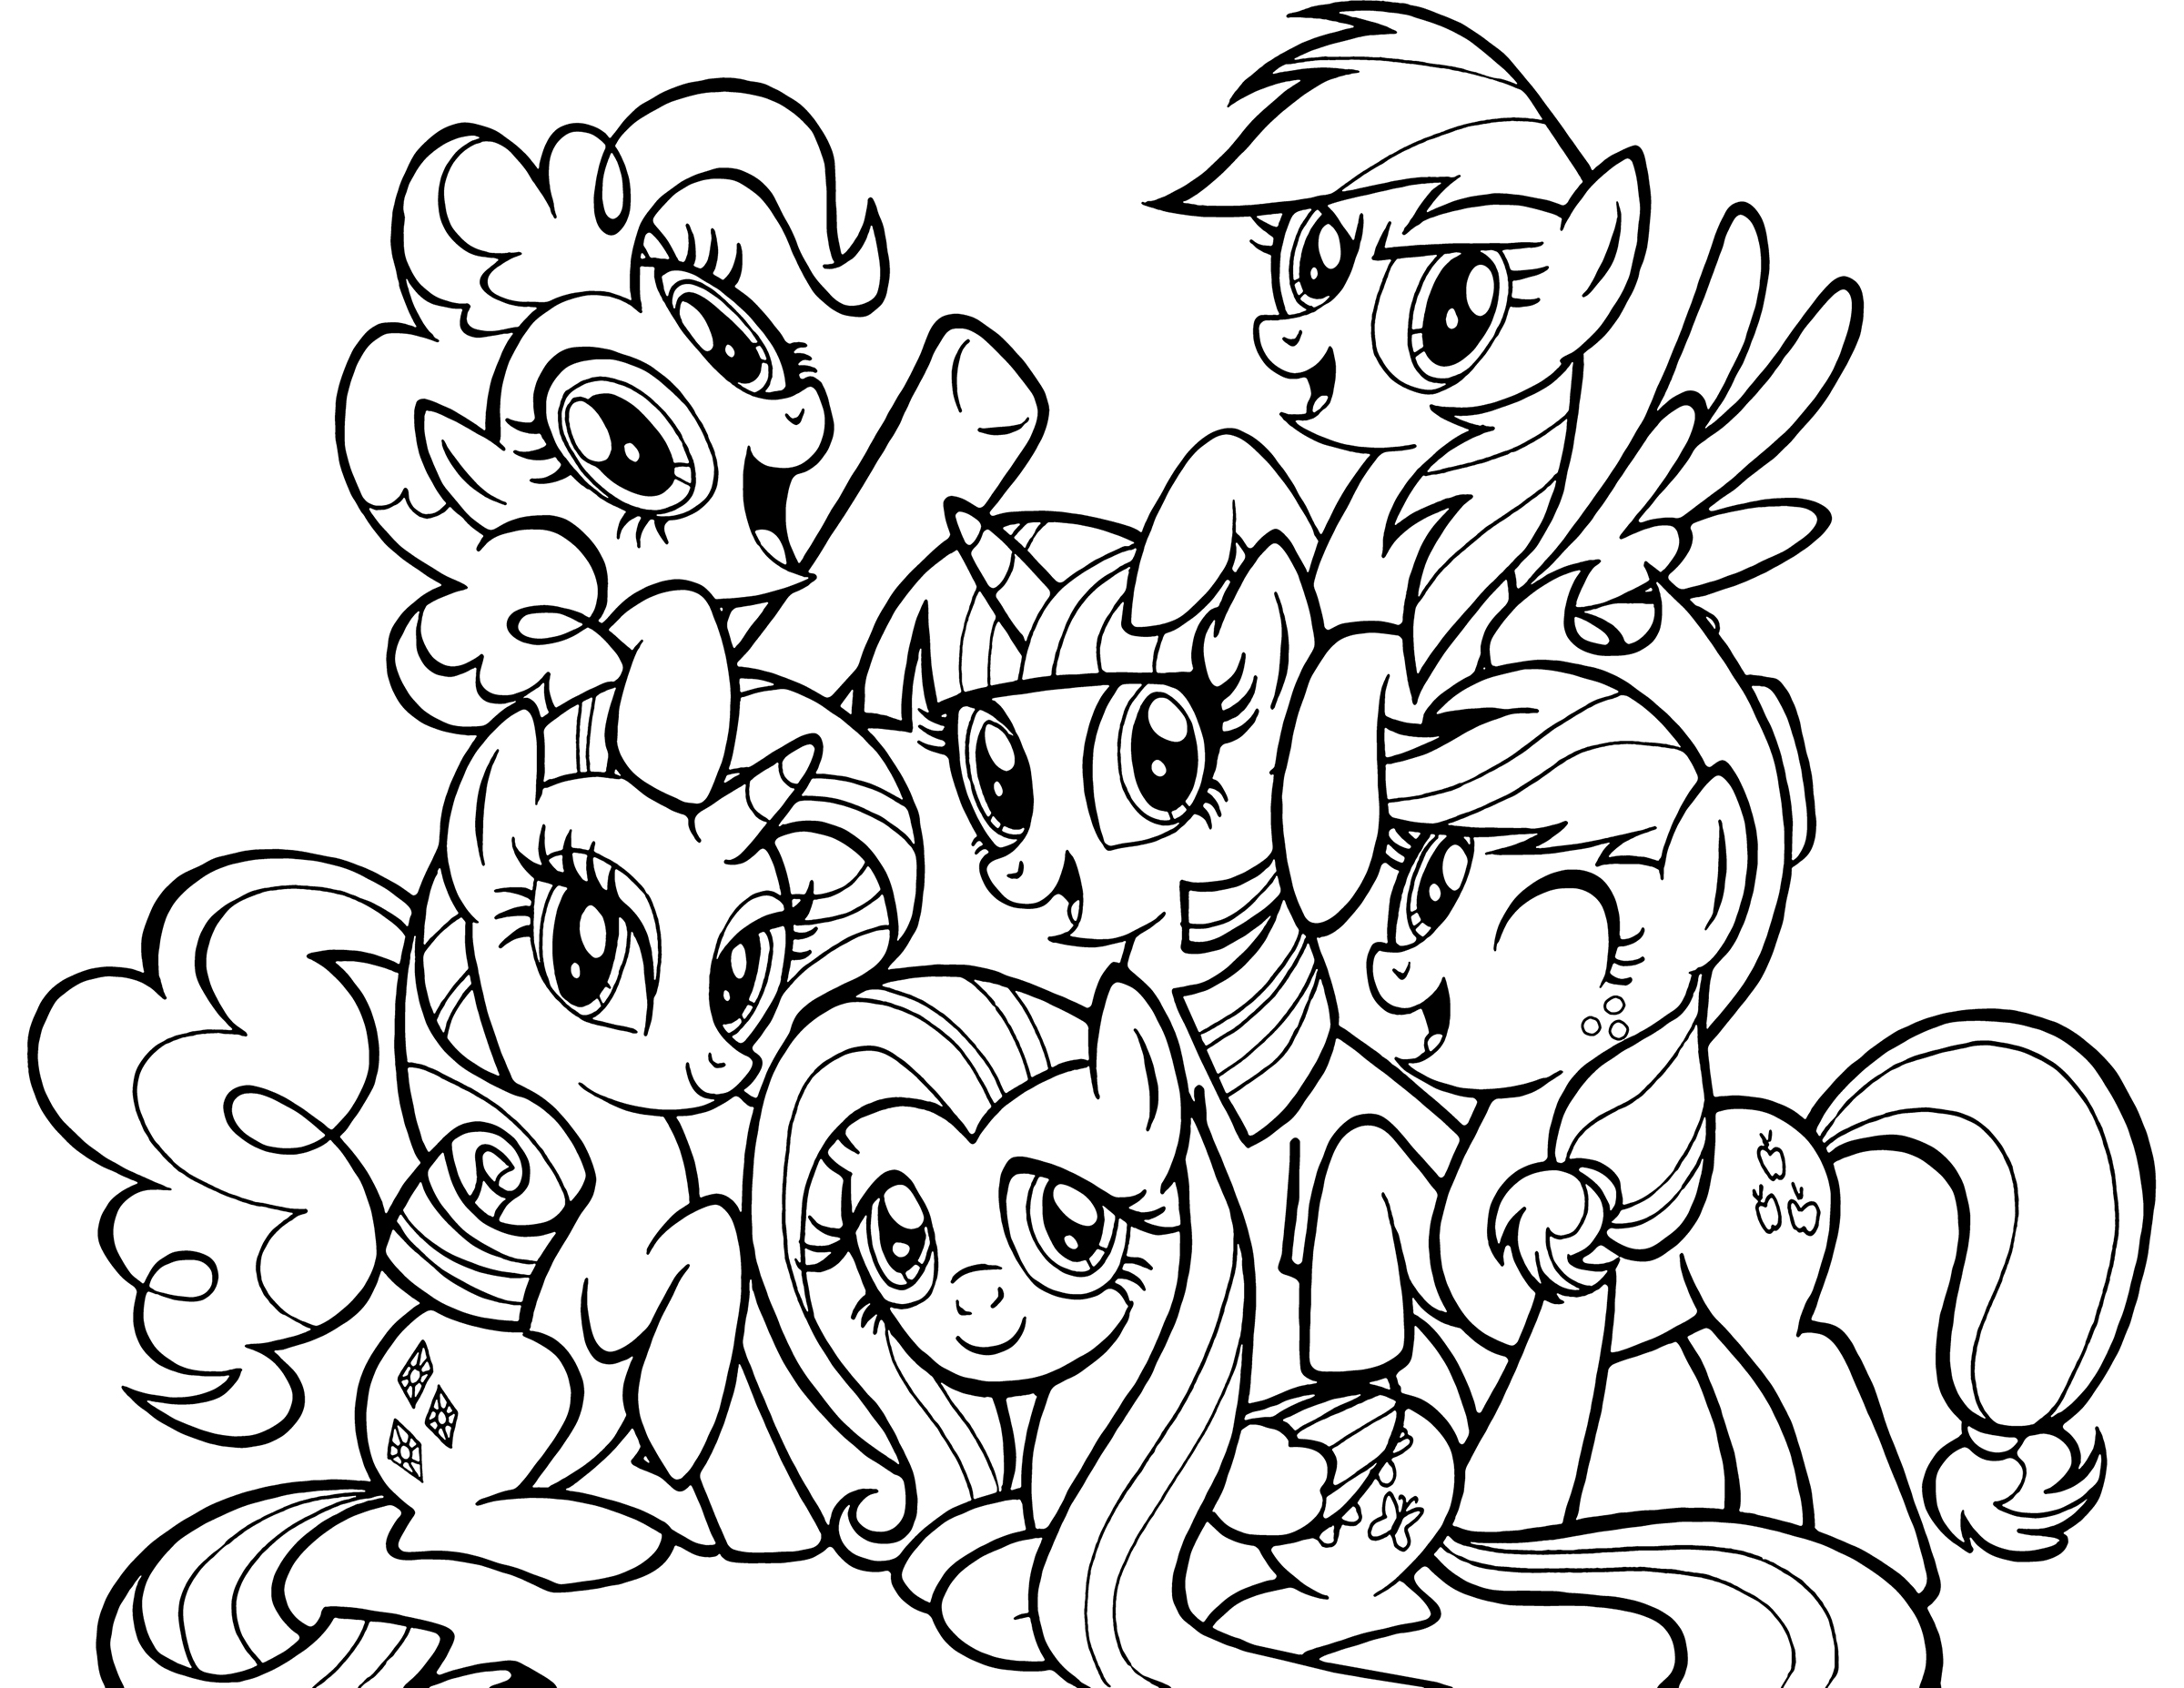 Ponies From Ponyville Coloring Pages Free Printable